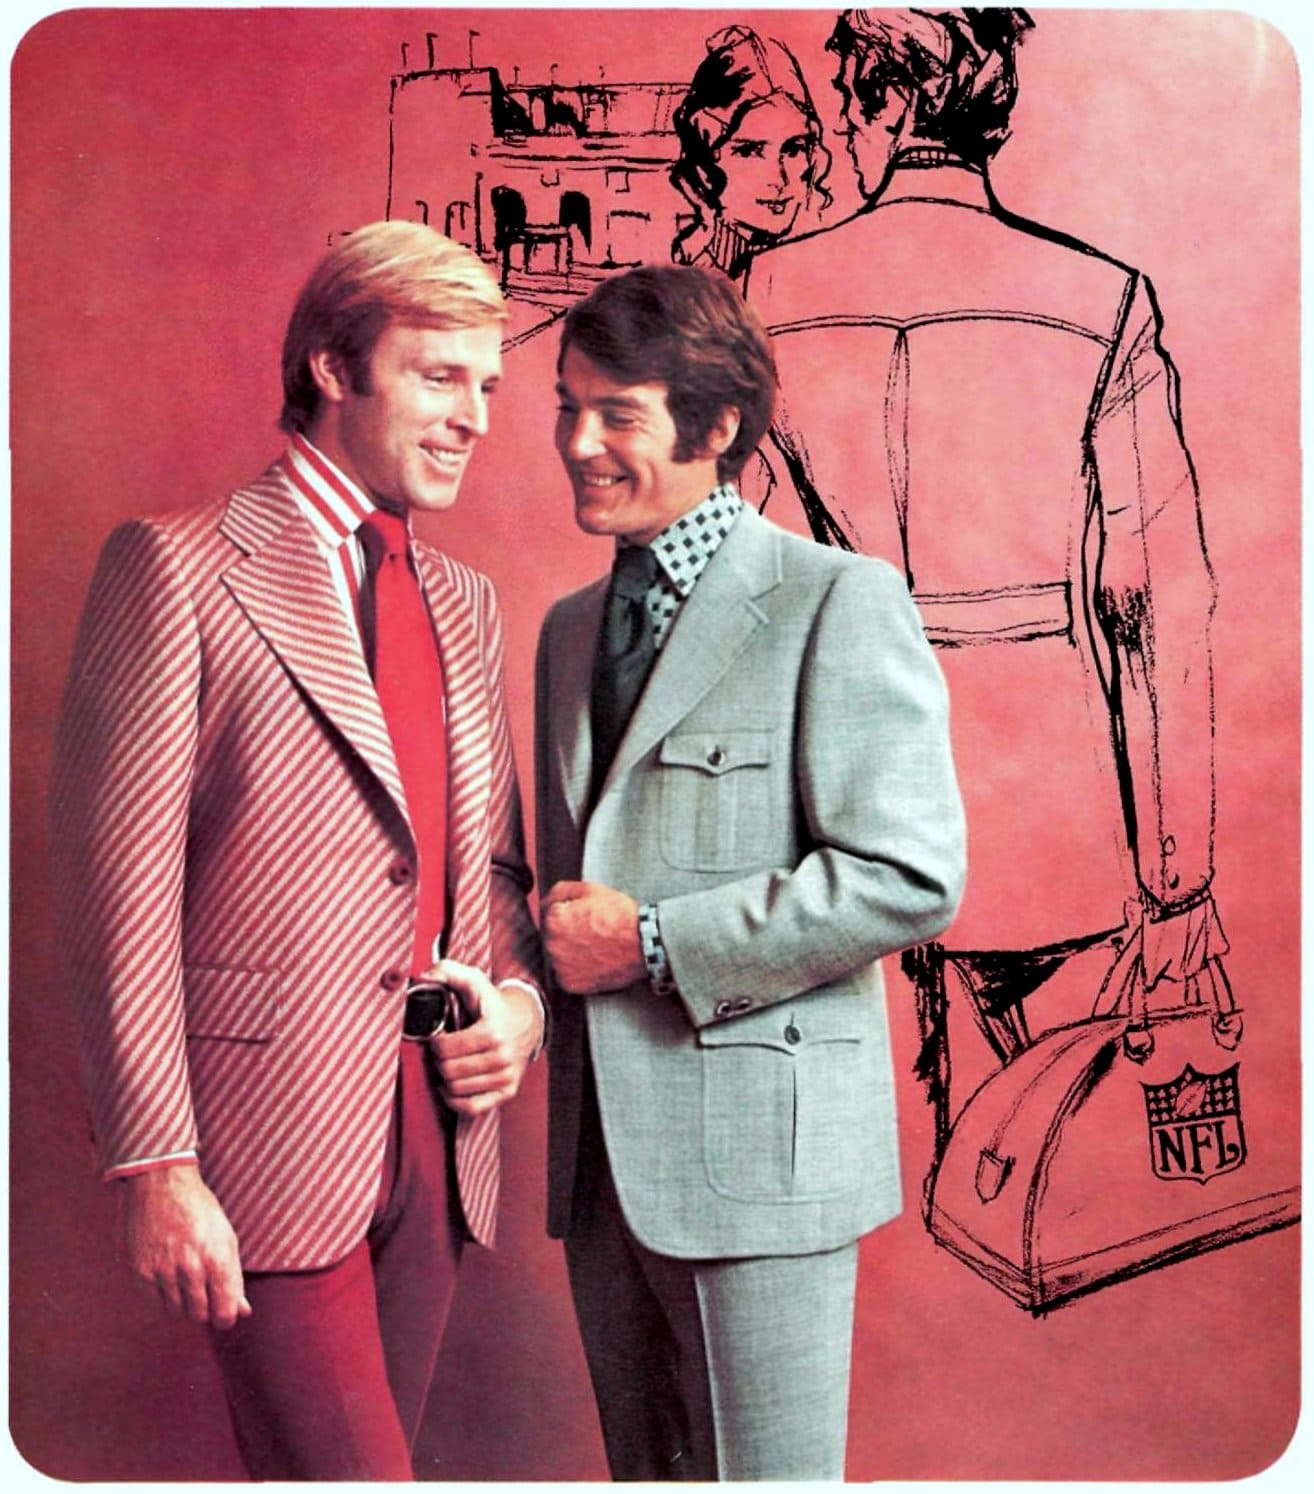 Retro seventies suits for guys (1971)